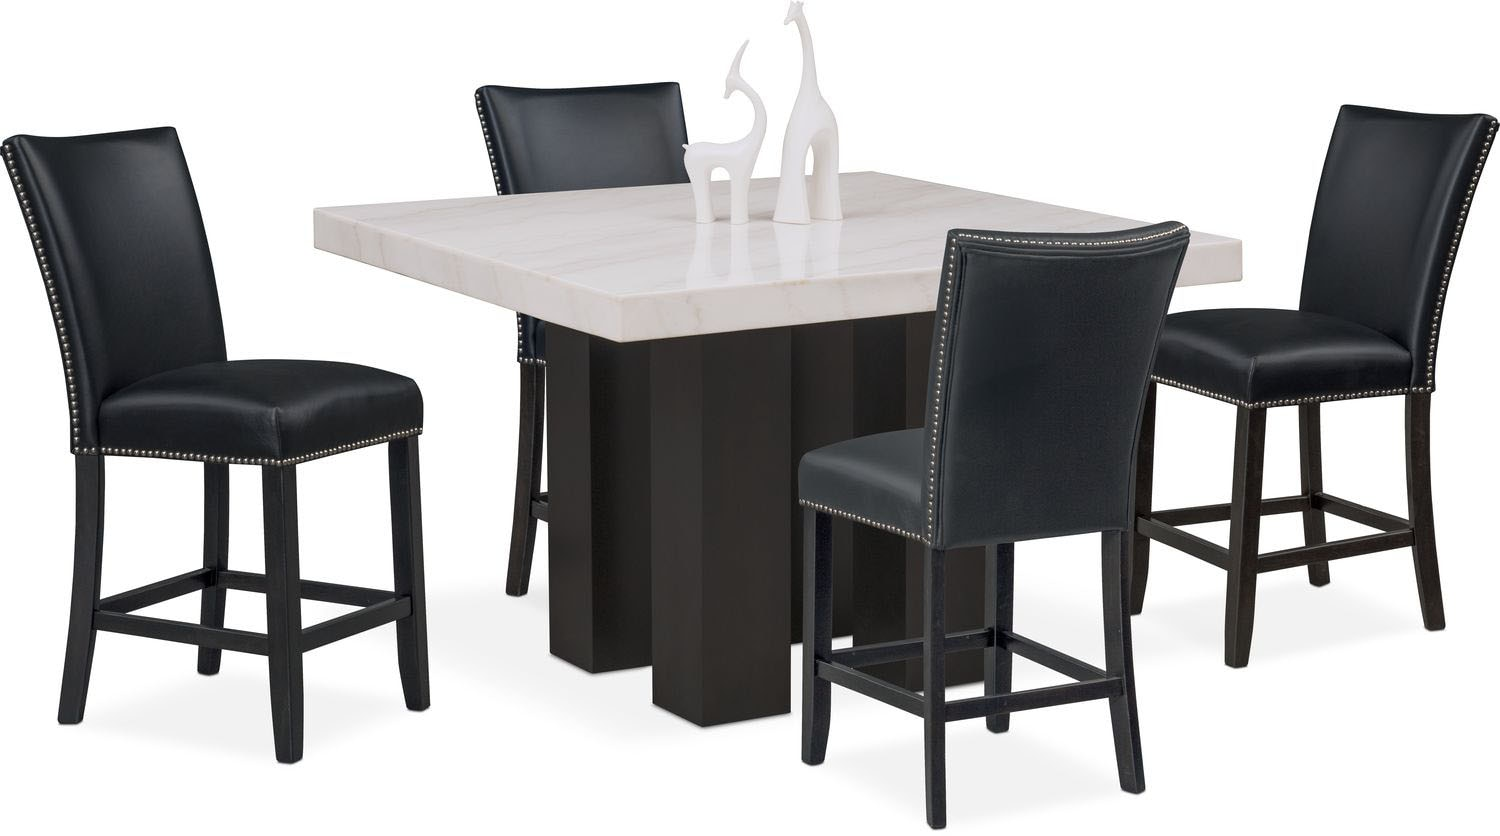 dining room counter height tables | Artemis Counter-Height Dining Table and 4 Upholstered ...